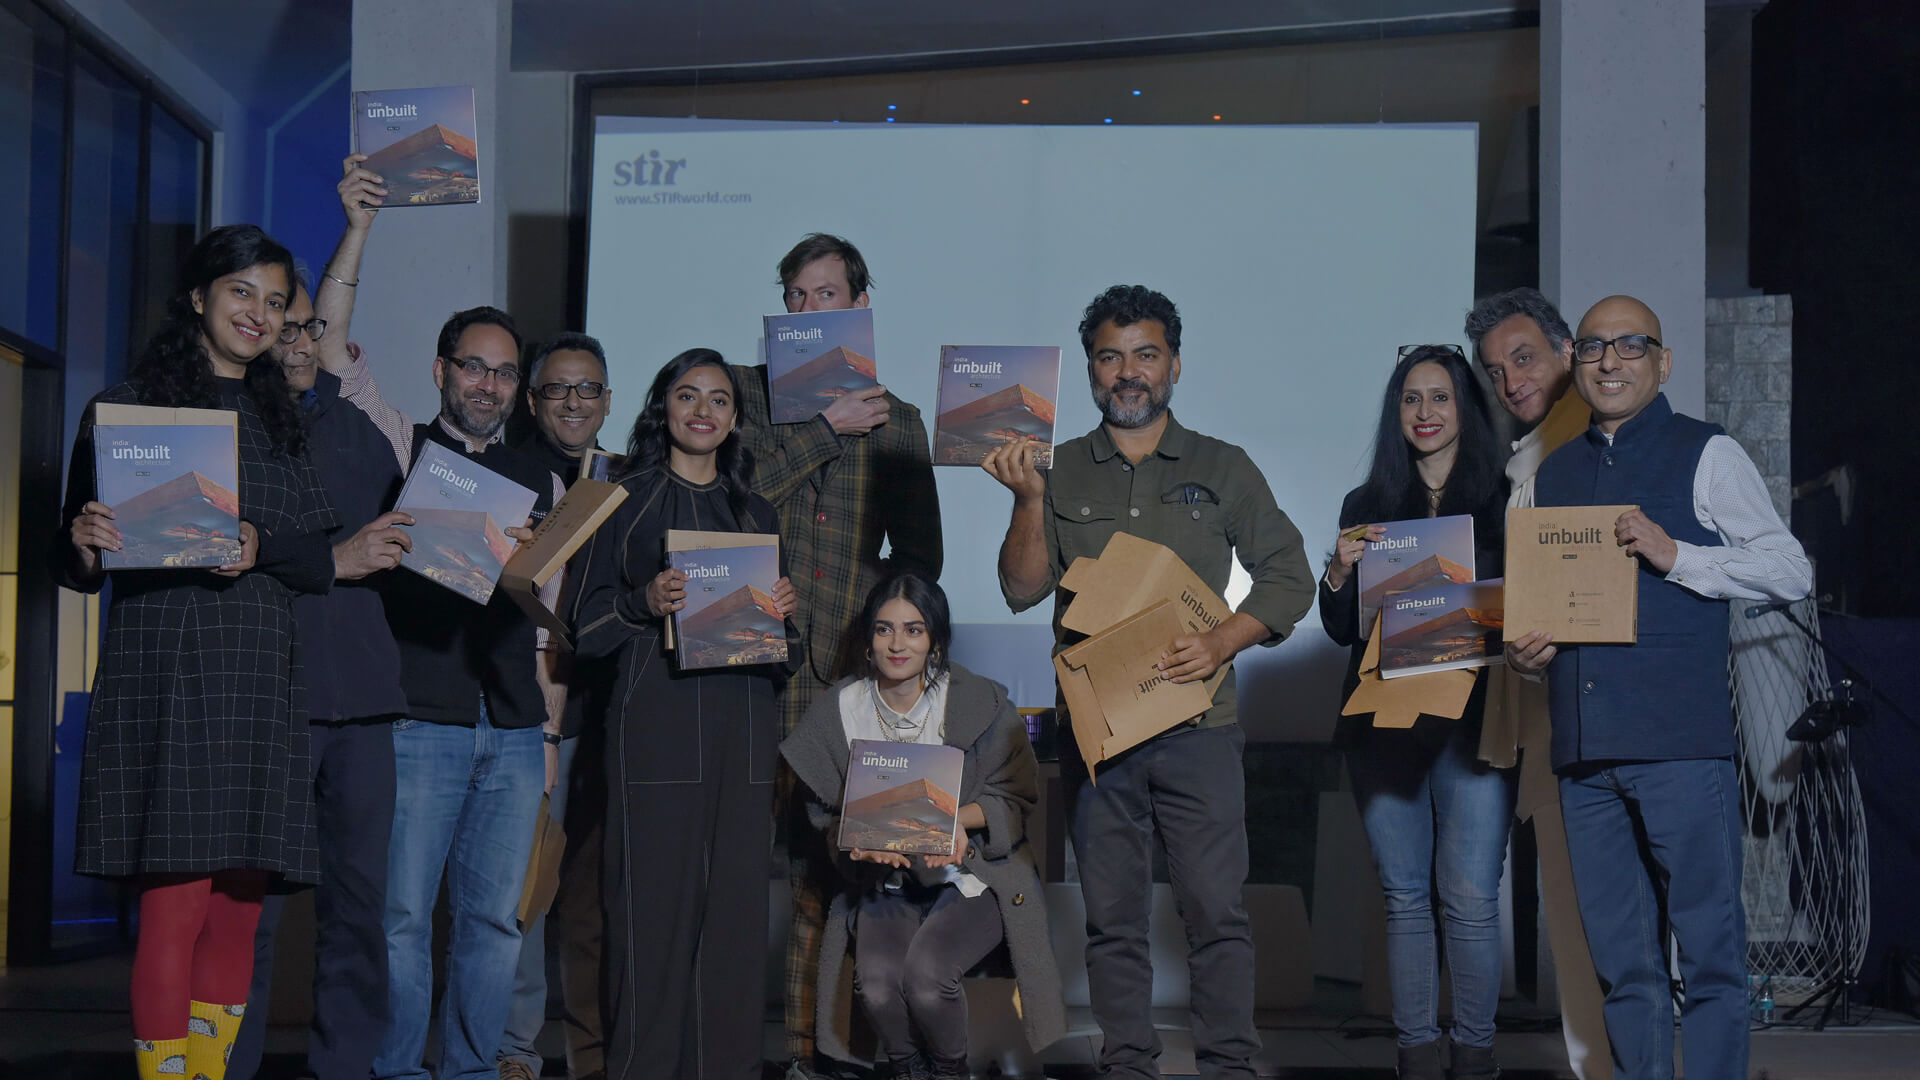 A glimpse from the book launch of 'india: unbuilt architecture' at the STIR Gallery, New Delhi | STIRworld